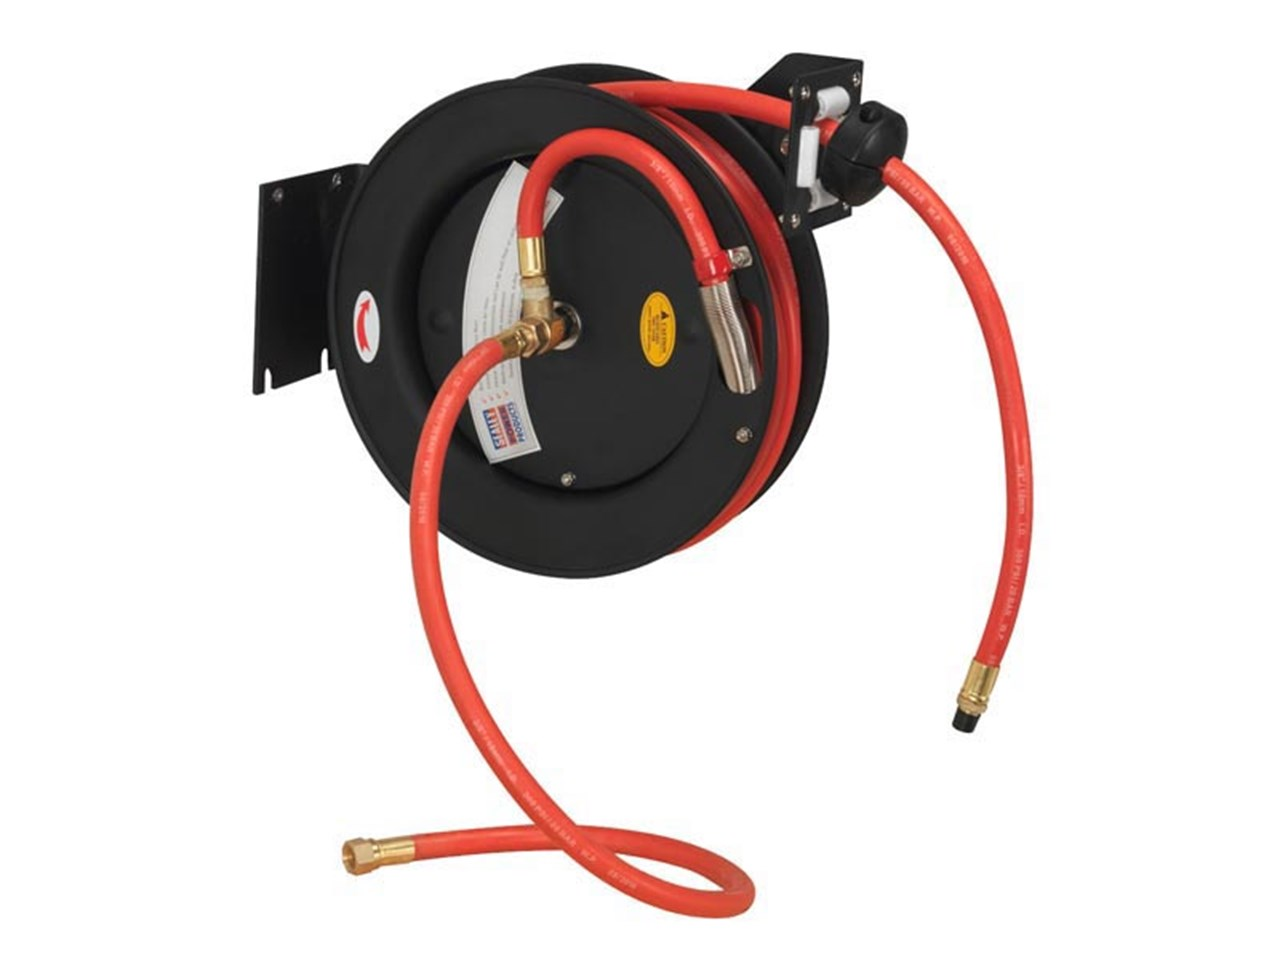 Sealey Sa84 Retractable Air Hose Steel Reel 8mtr 10mm Id Rubber Wiring